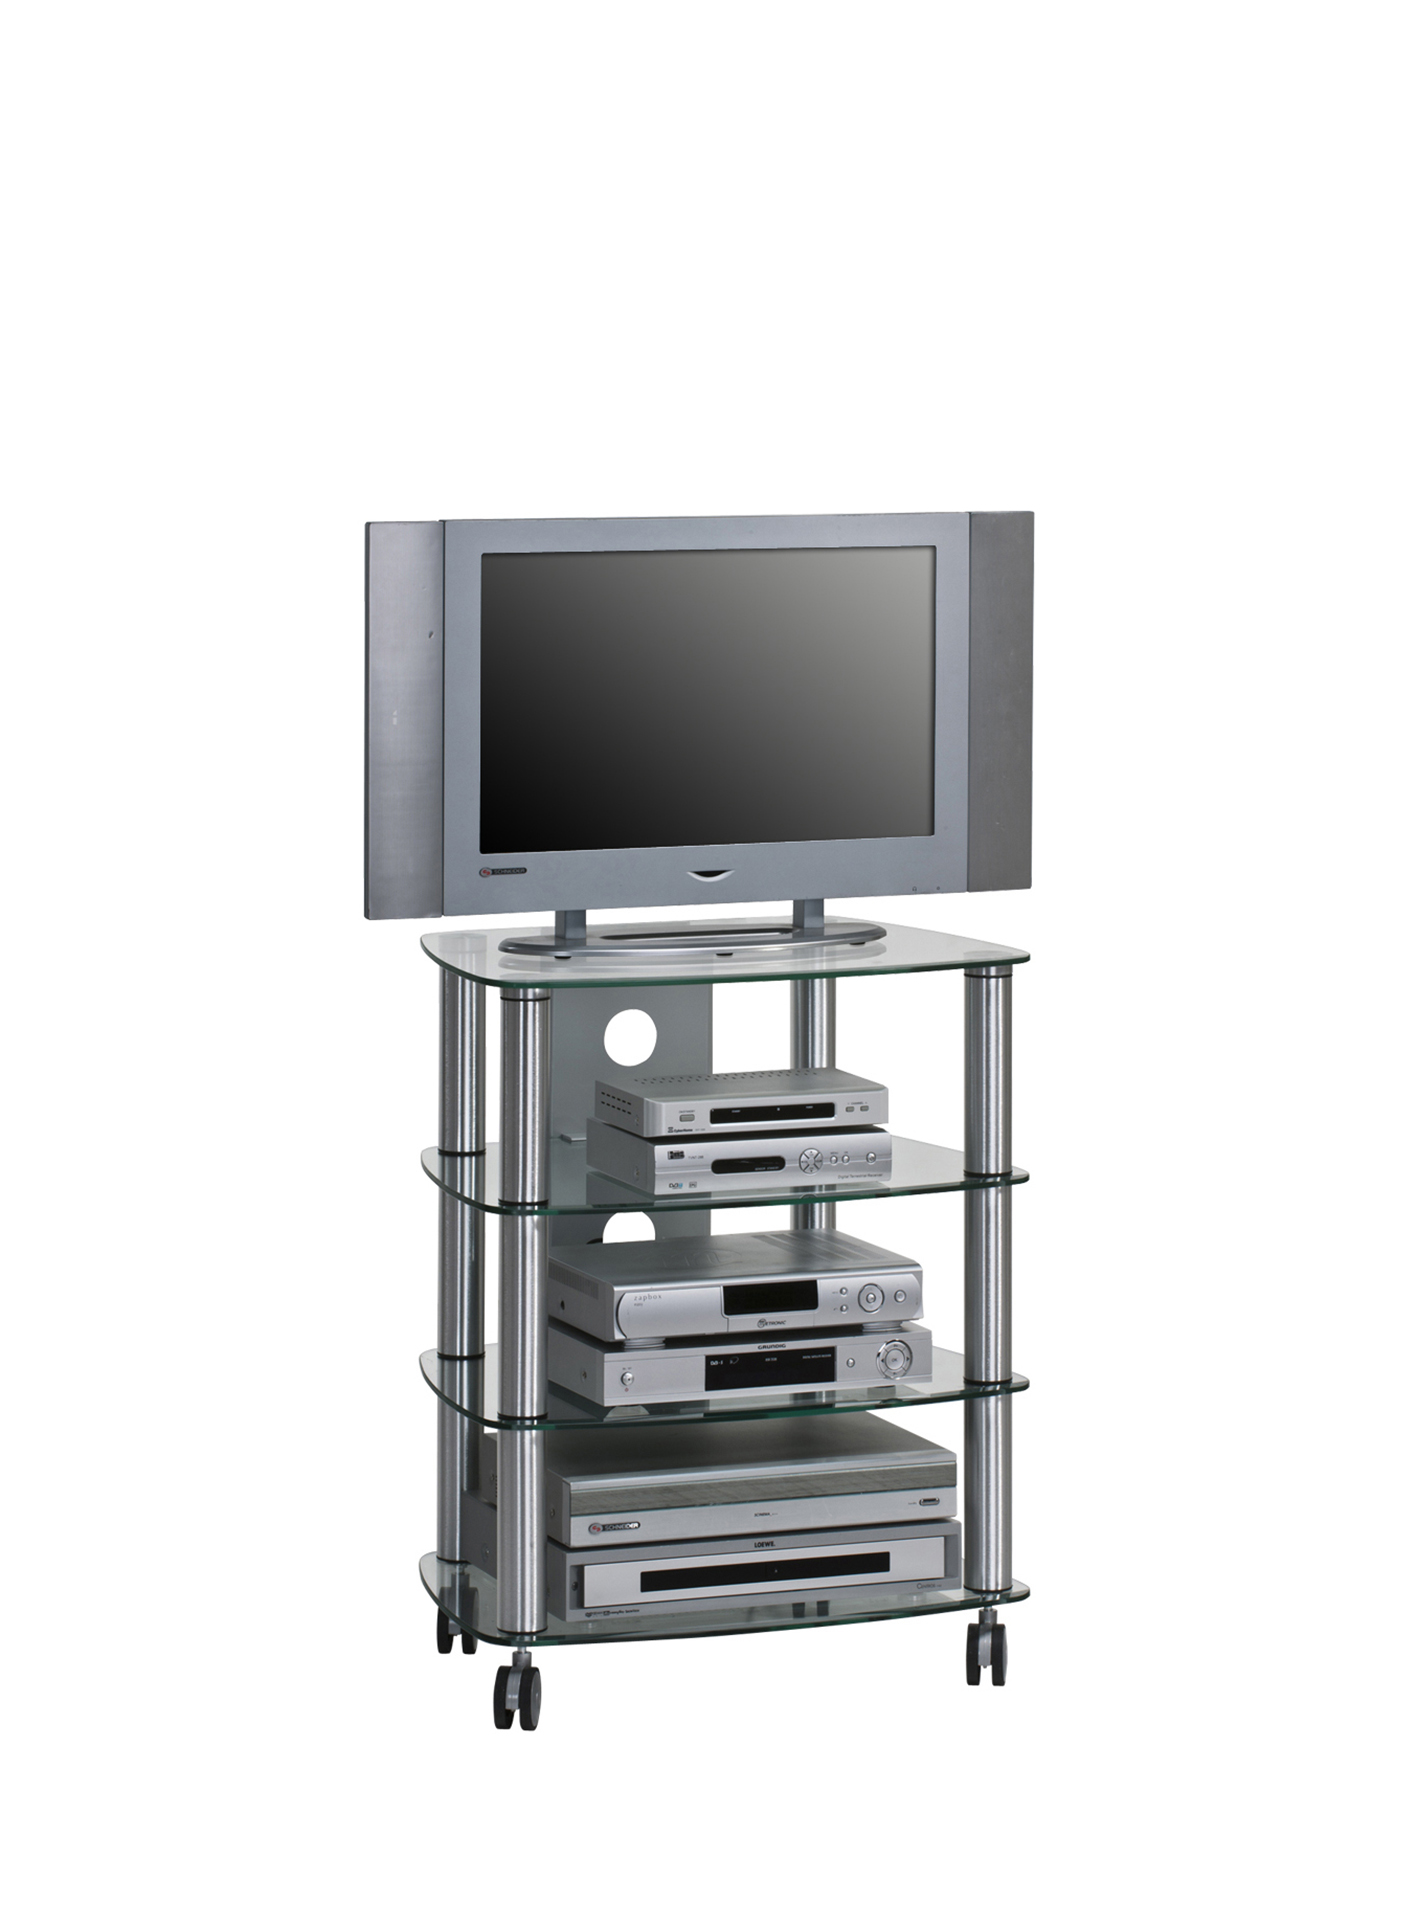 tv und hifi rack tv board glastisch design mod mj039 metall alu ebay. Black Bedroom Furniture Sets. Home Design Ideas